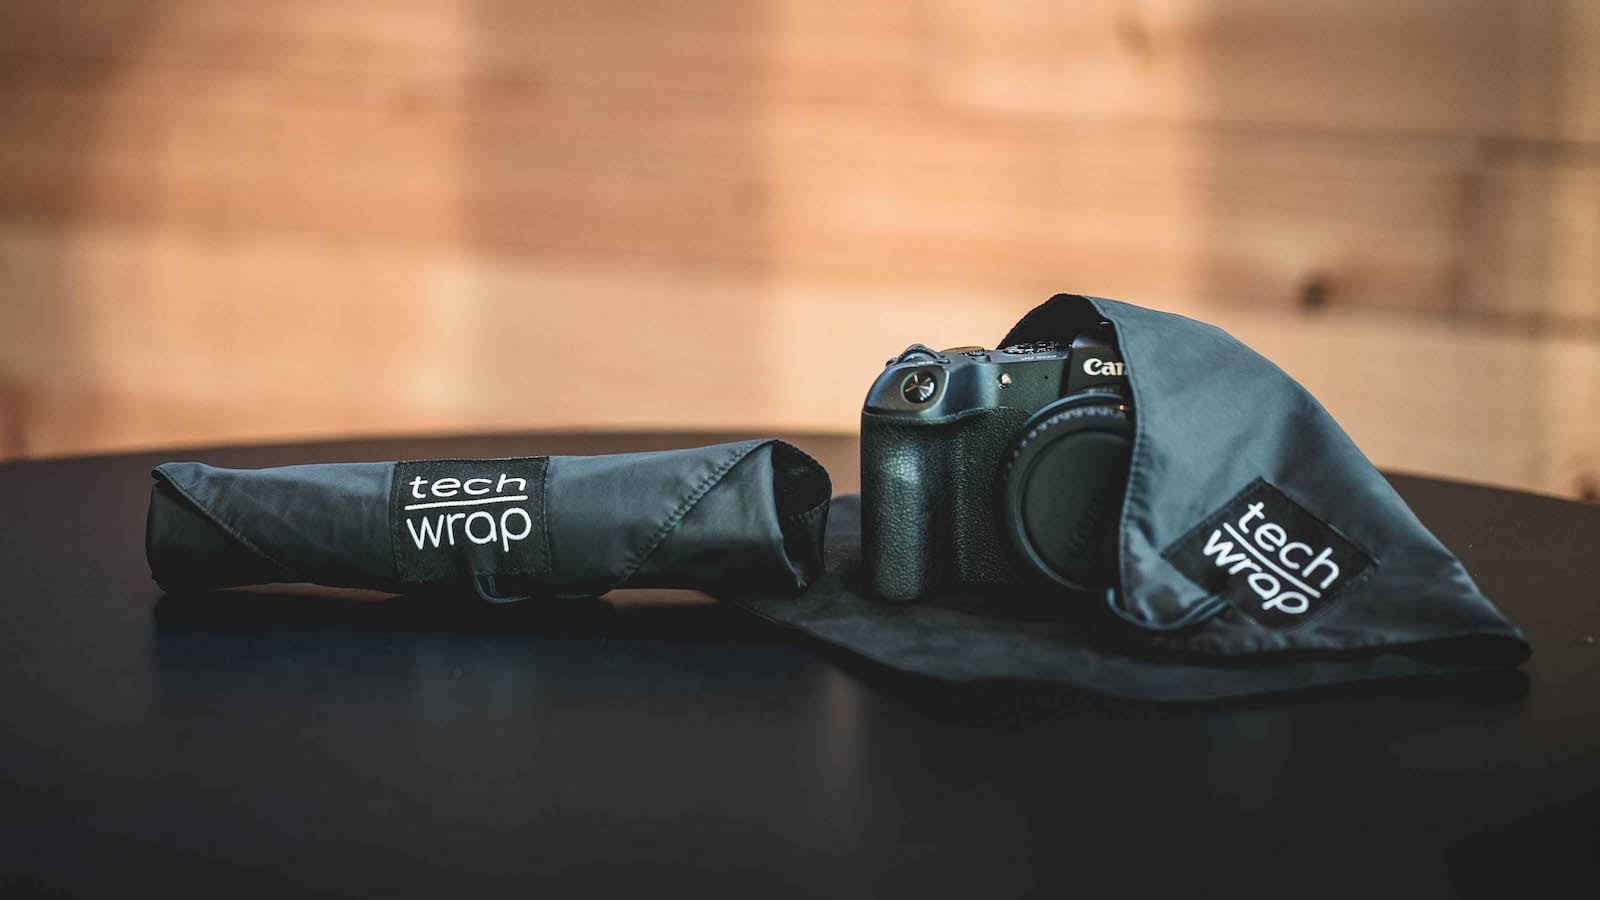 Tech Wrap Multipurpose Carry Cloth protects your valuable camera gear